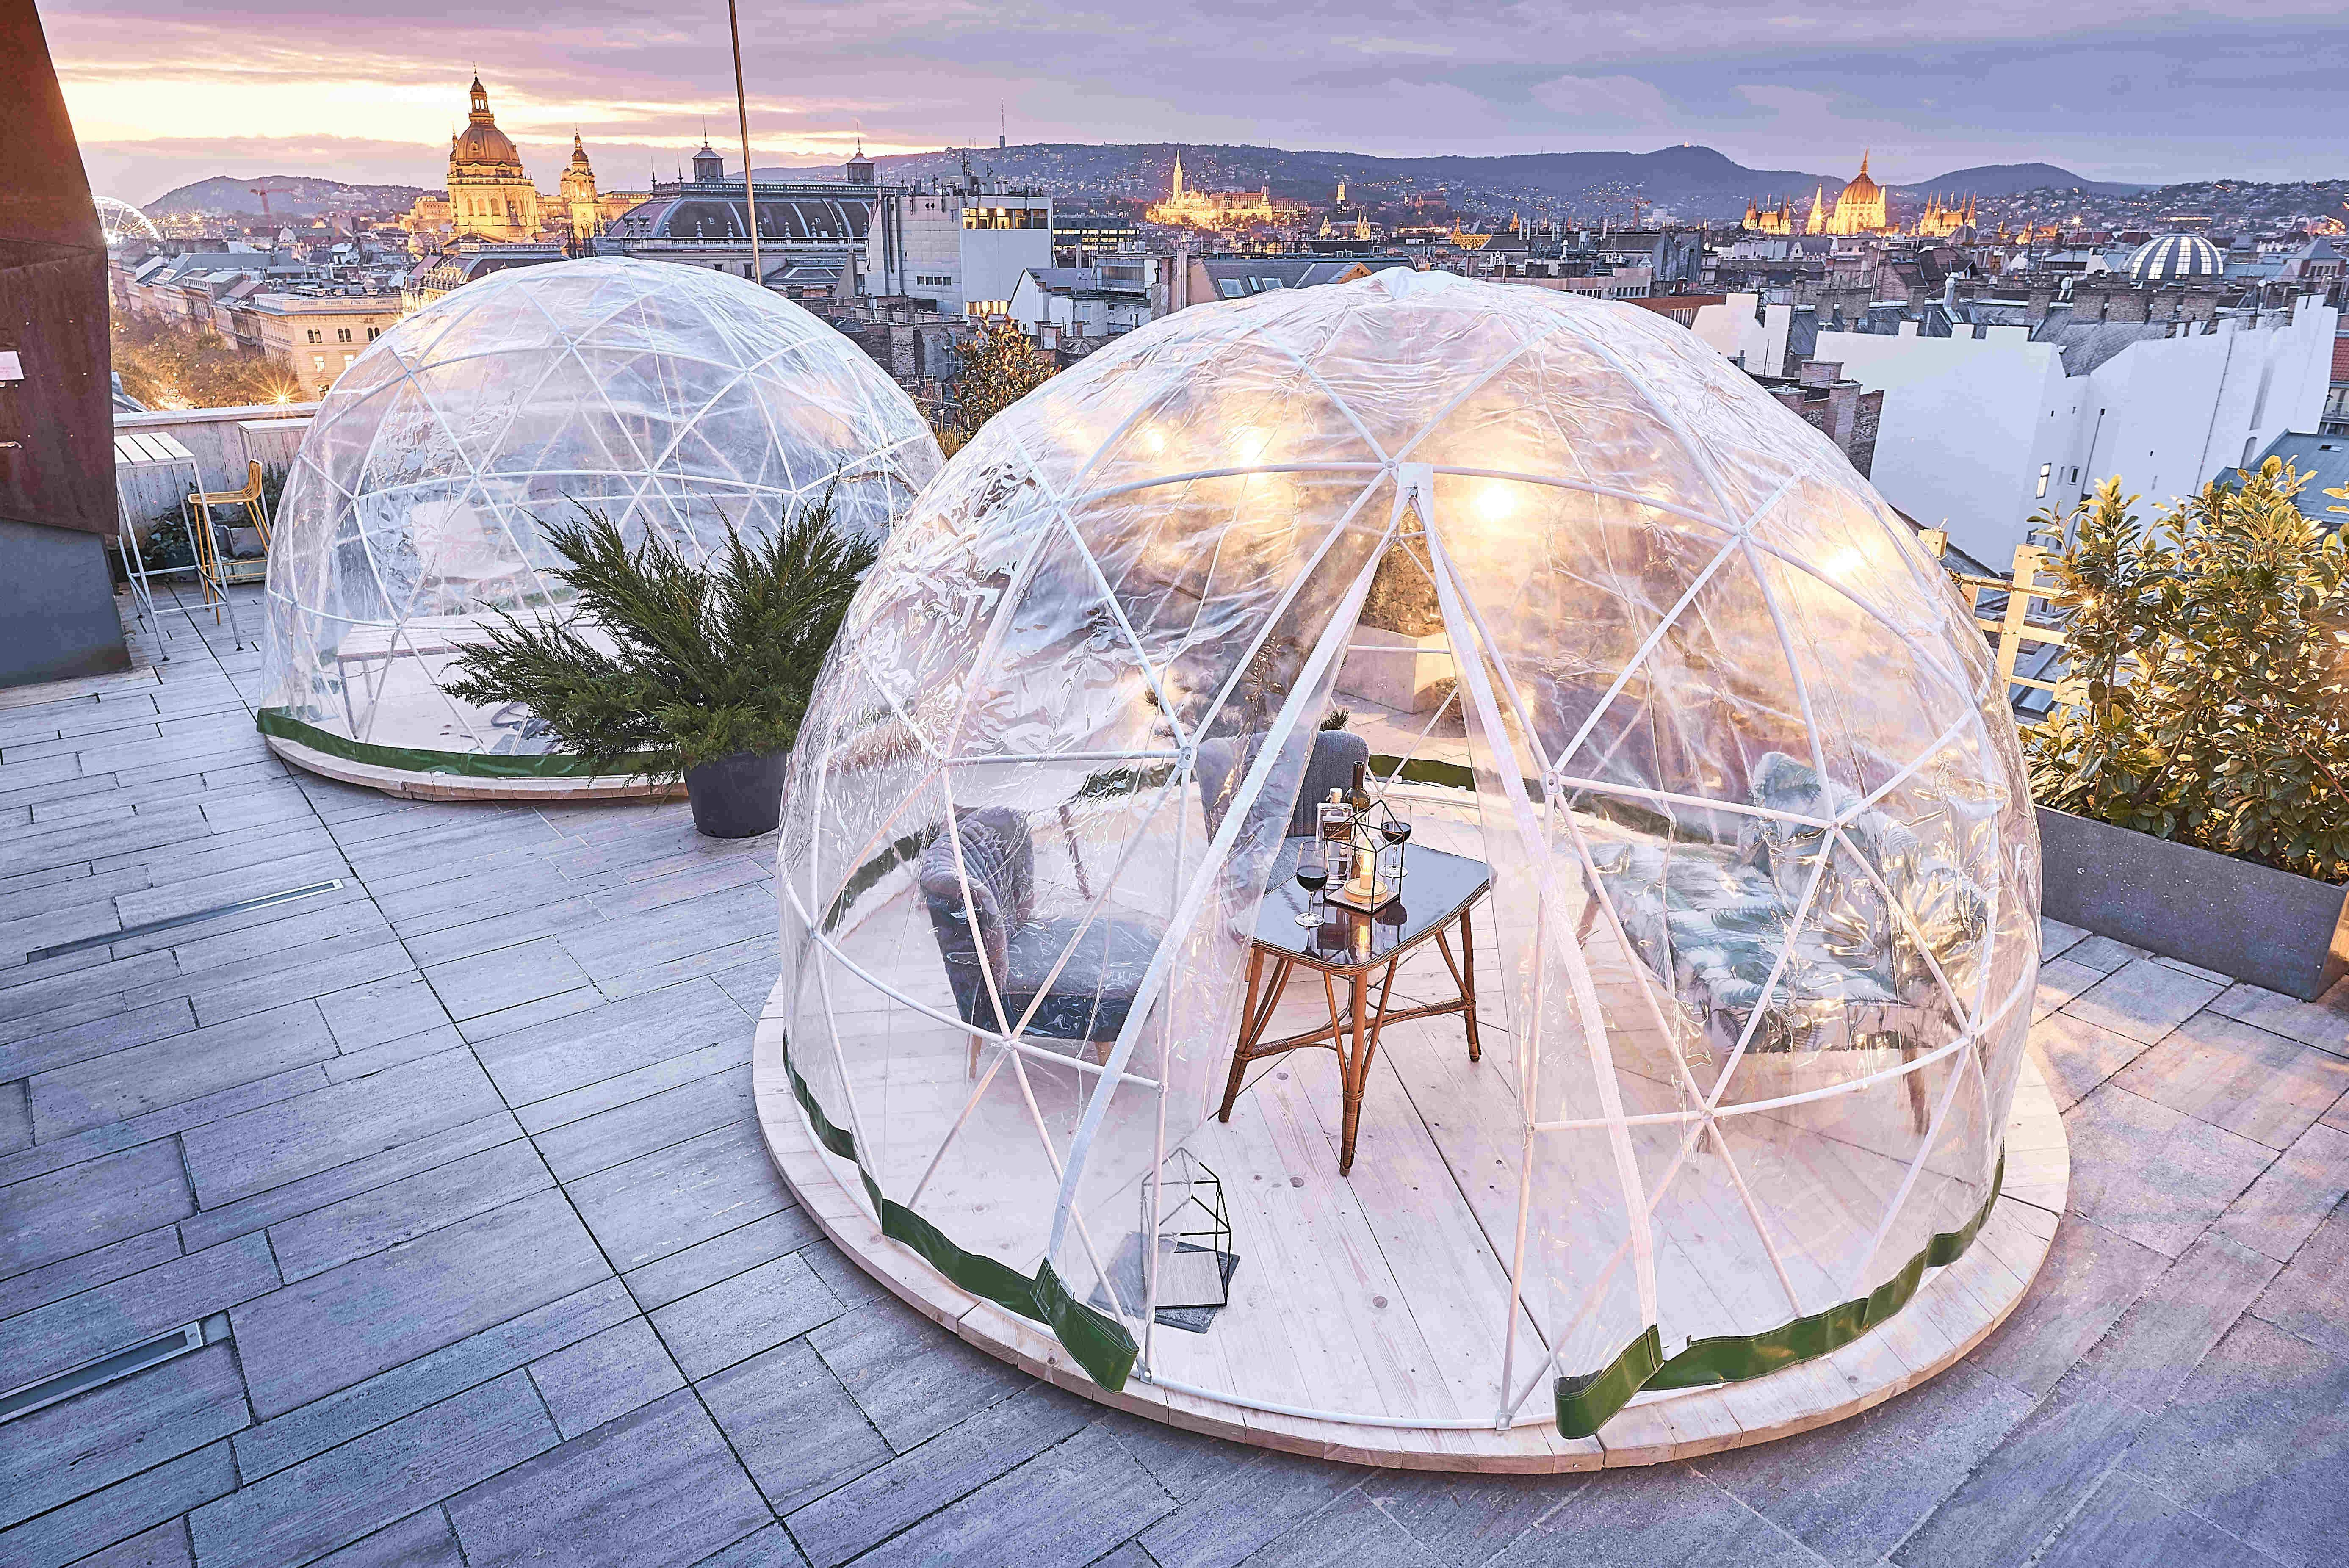 Enjoy the wintry beauty of Budapest from a rooftop igloo bar